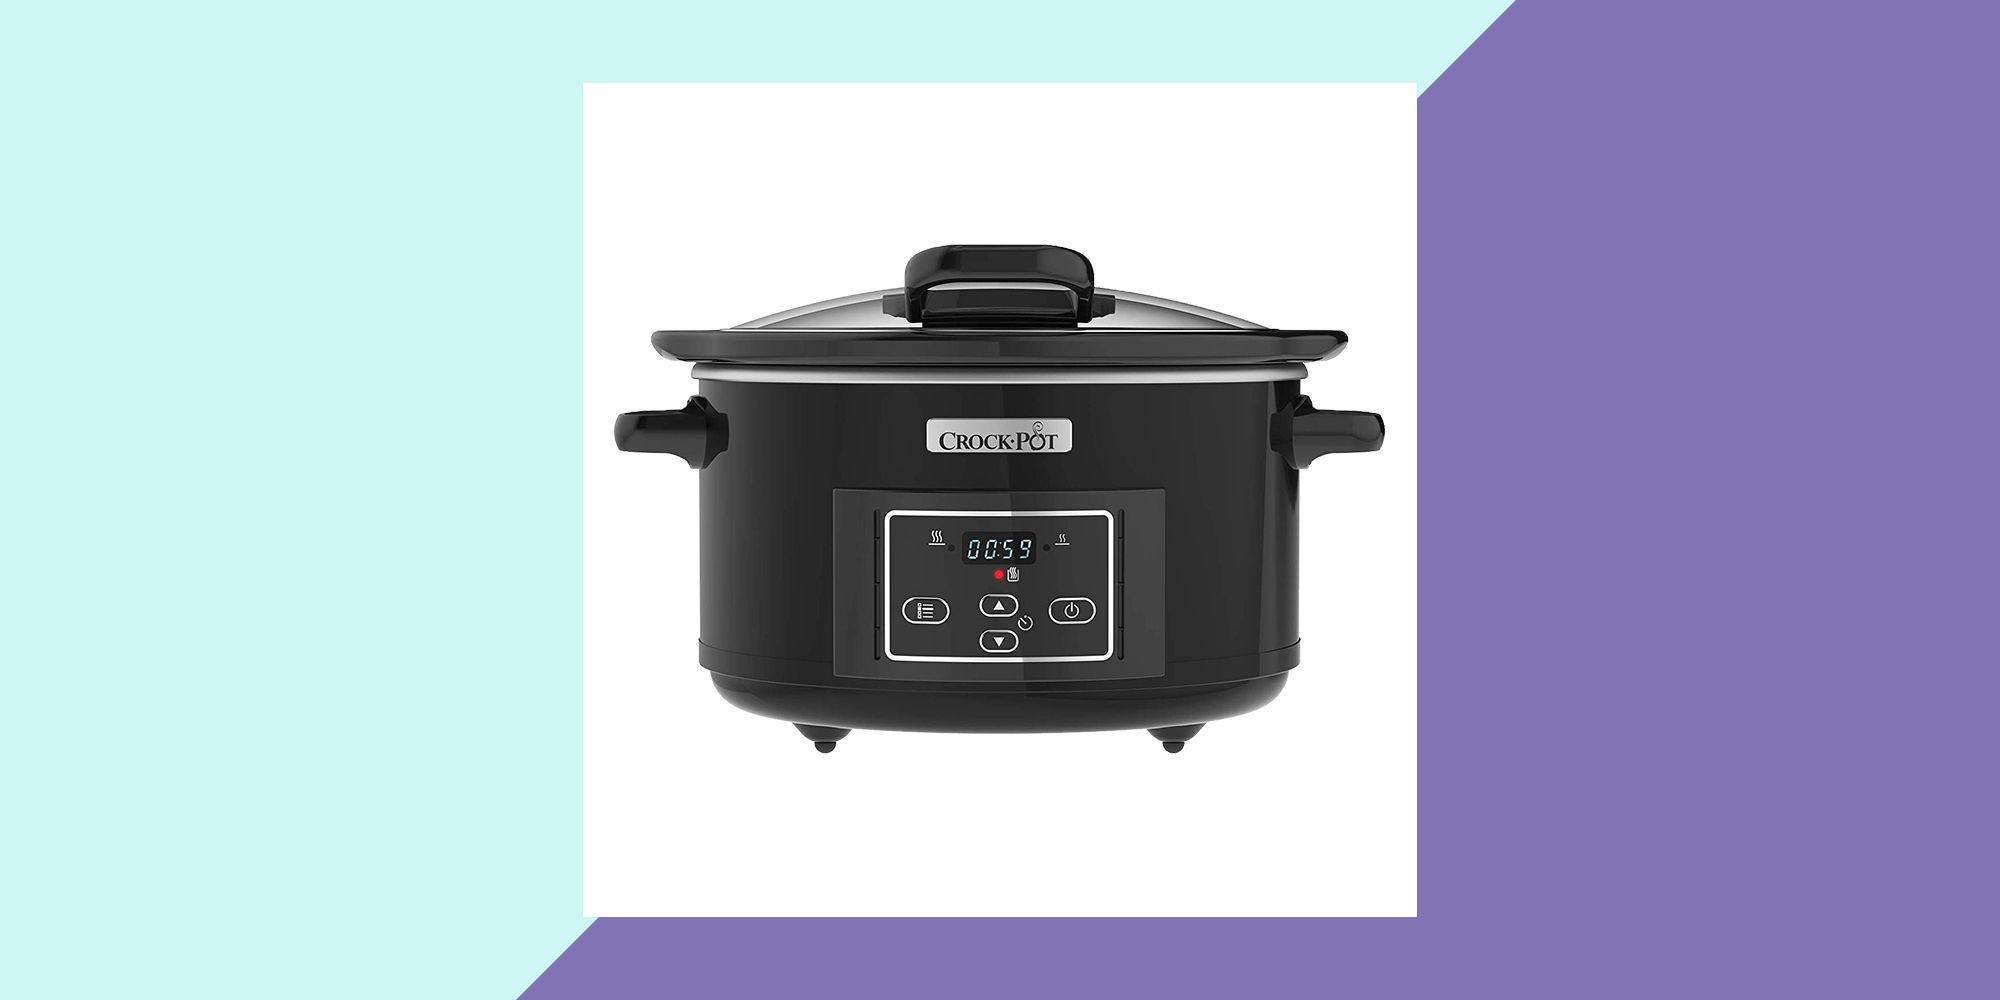 This GHI Approved Crock-Pot slow cooker is under £35 on Amazon